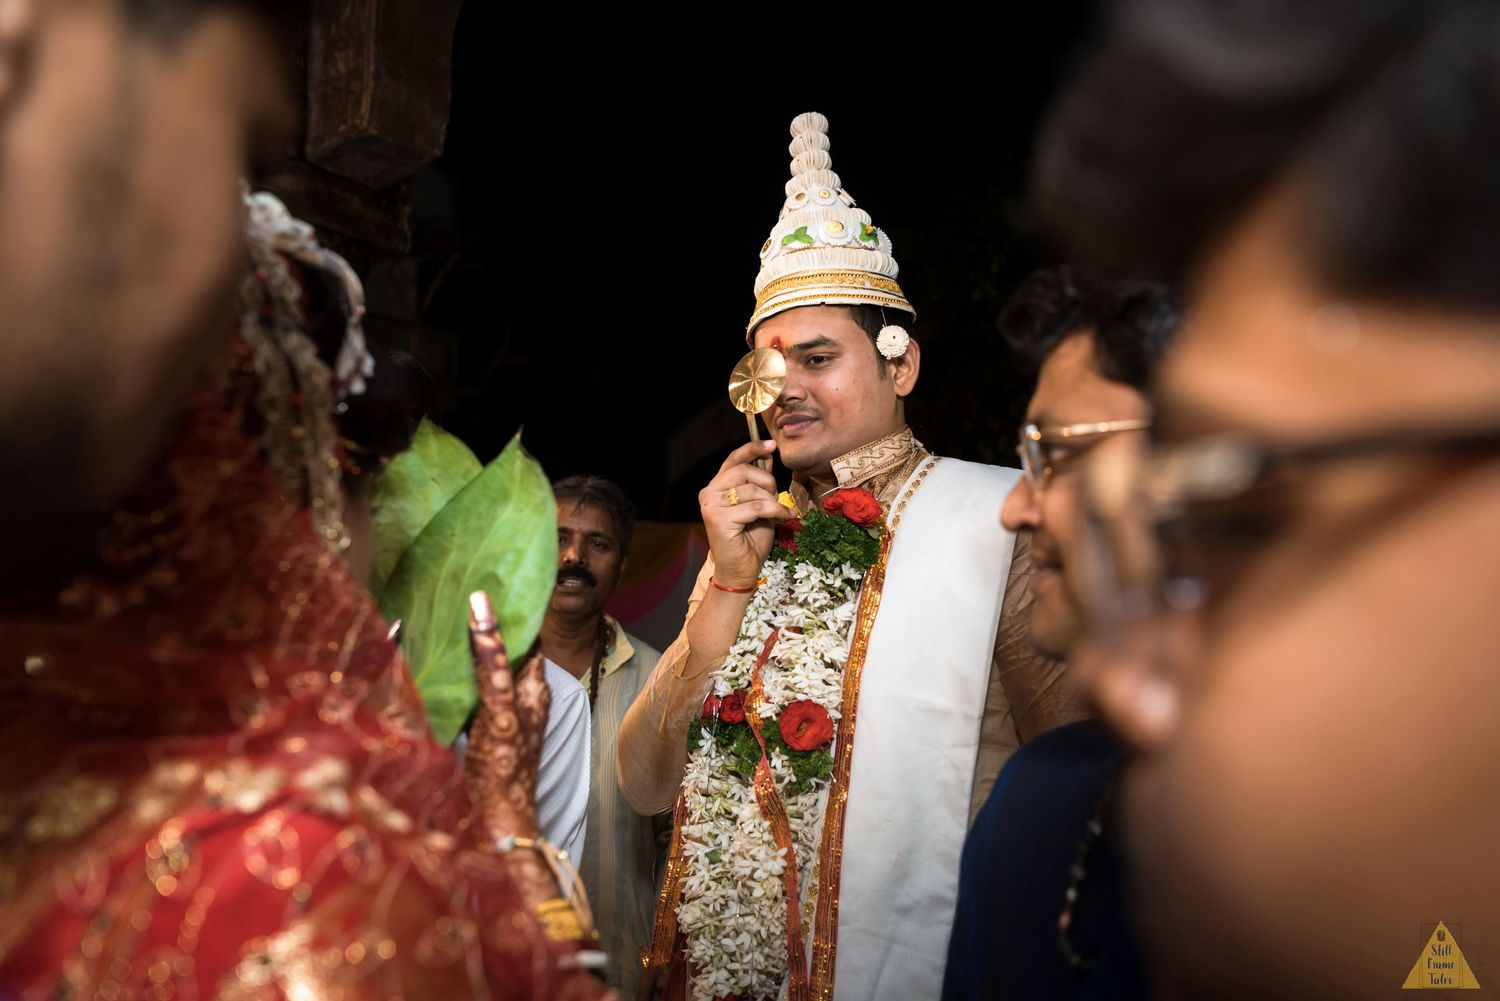 Groom holding spoon type object in front of his face in a begali wedding ritual